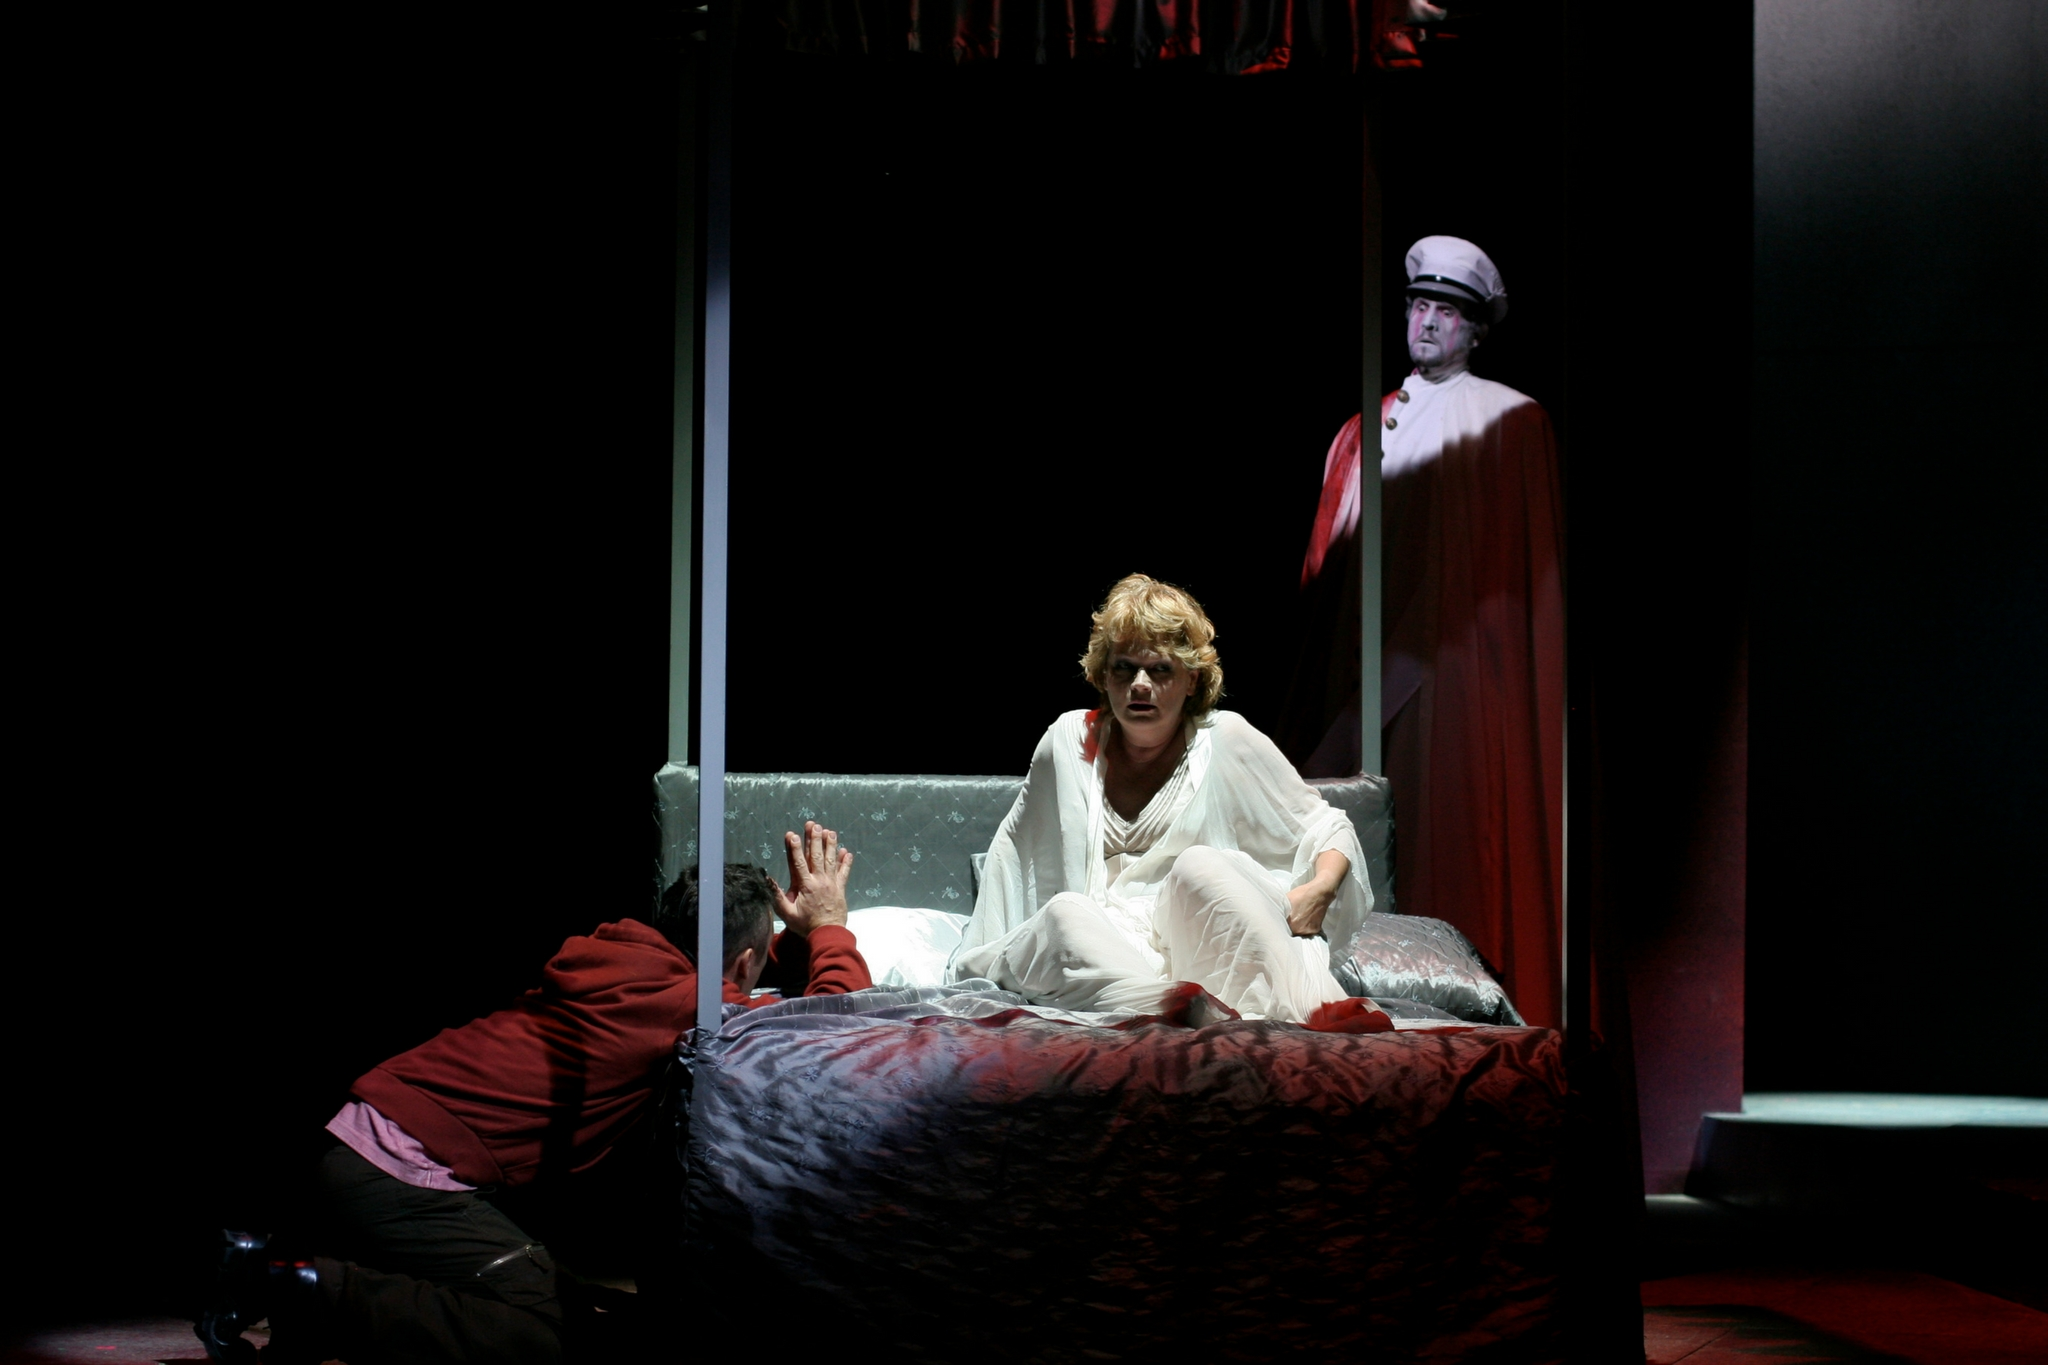 Jeffrey Donovan (Hamlet), Karen MacDonald (Gertrude) and Jeremiah Kissel (Ghost) in Hamlet, Shakespeare on the Common 2005